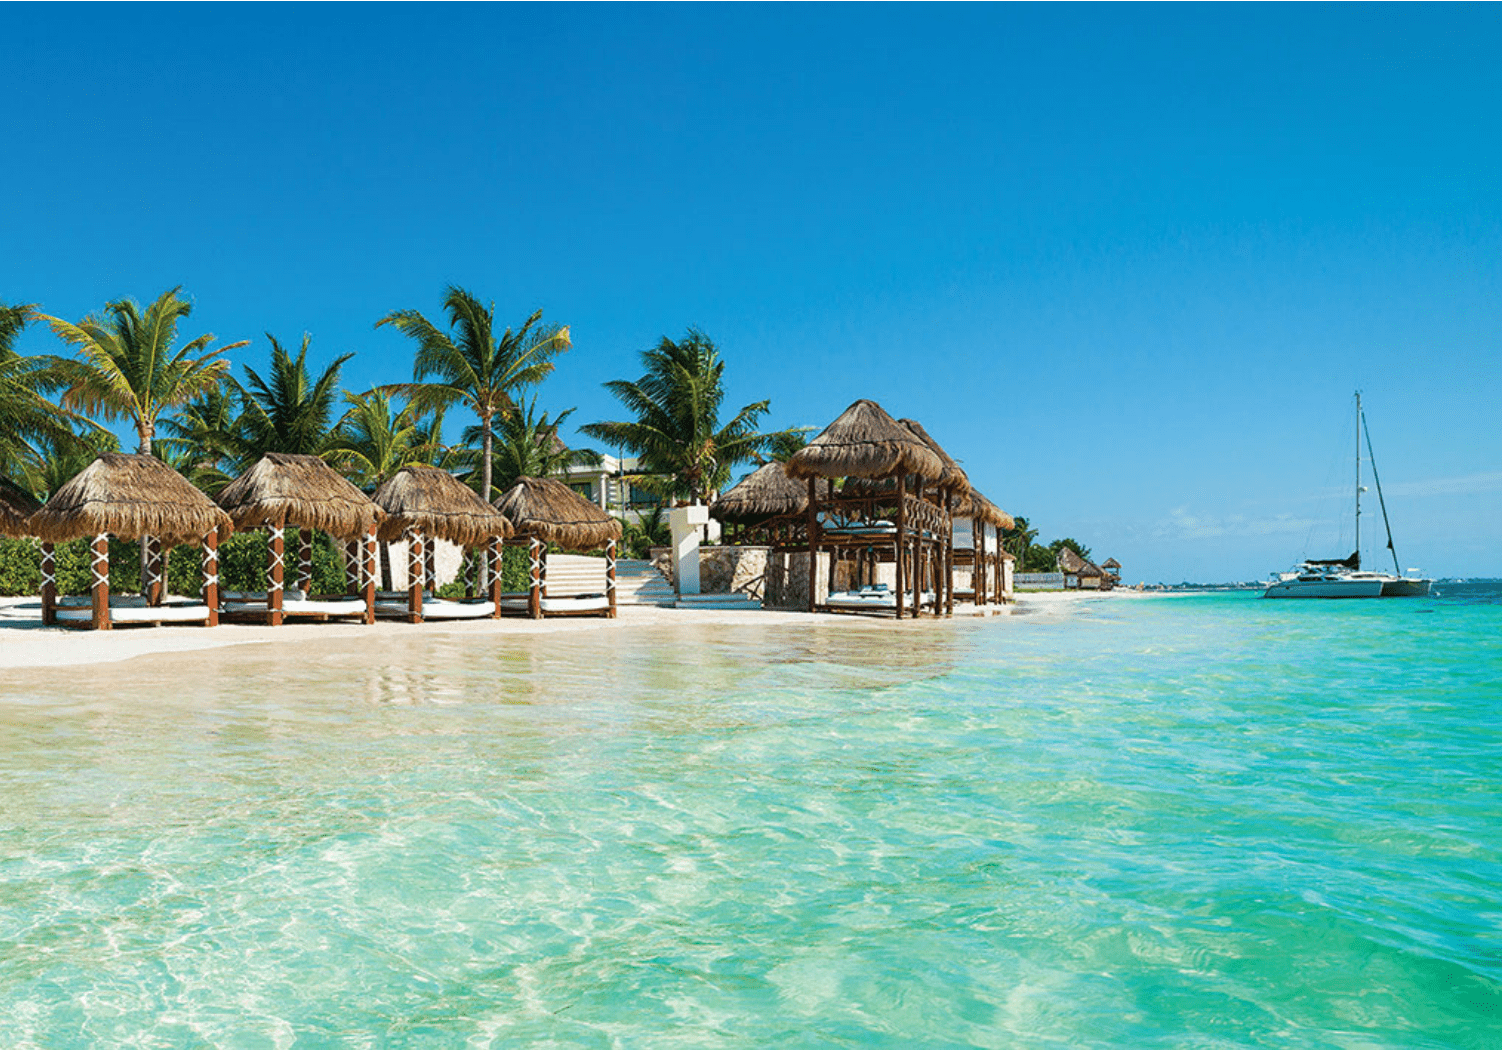 Best AllInclusive Resorts in Mexico for Families